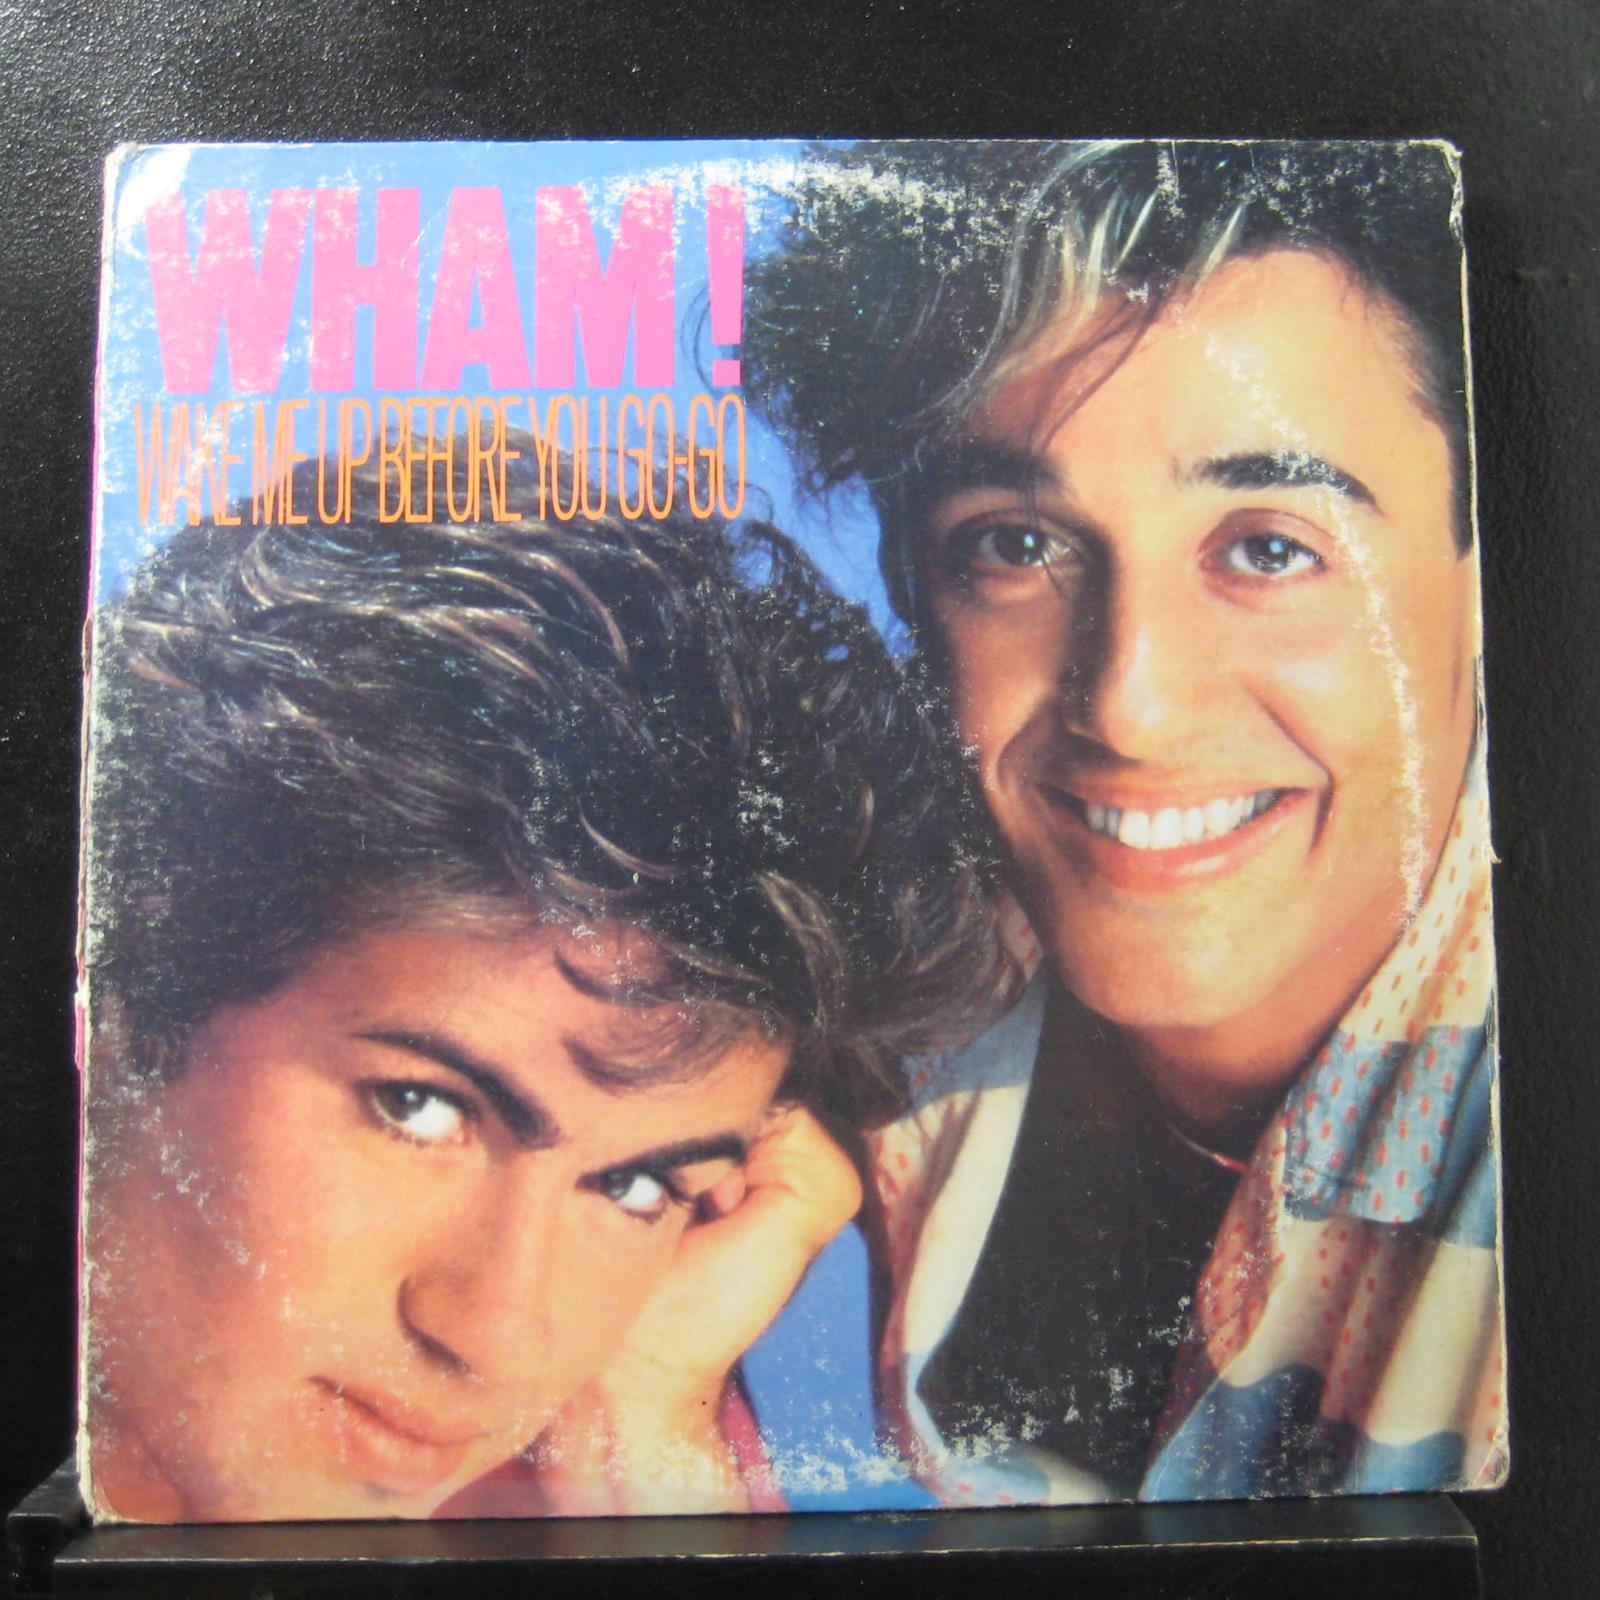 Details About Wham Wake Me Up Before You Go Go Lp Vg 44 05049 Promo Vinyl Record